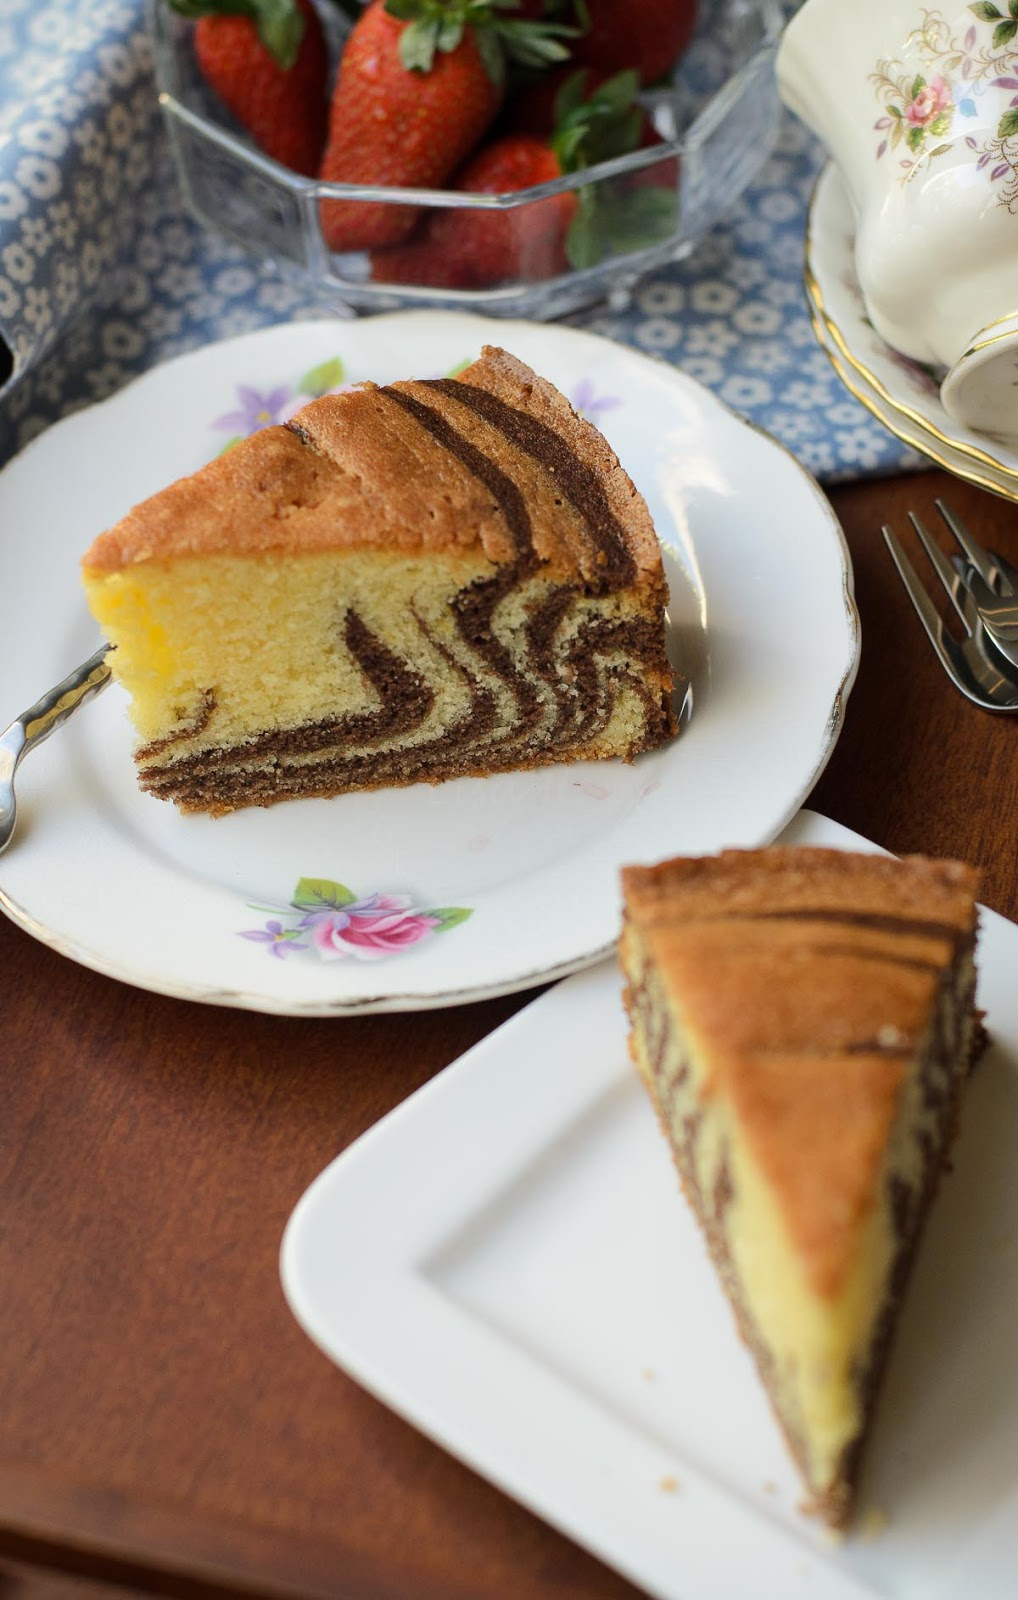 Delicious marble cake